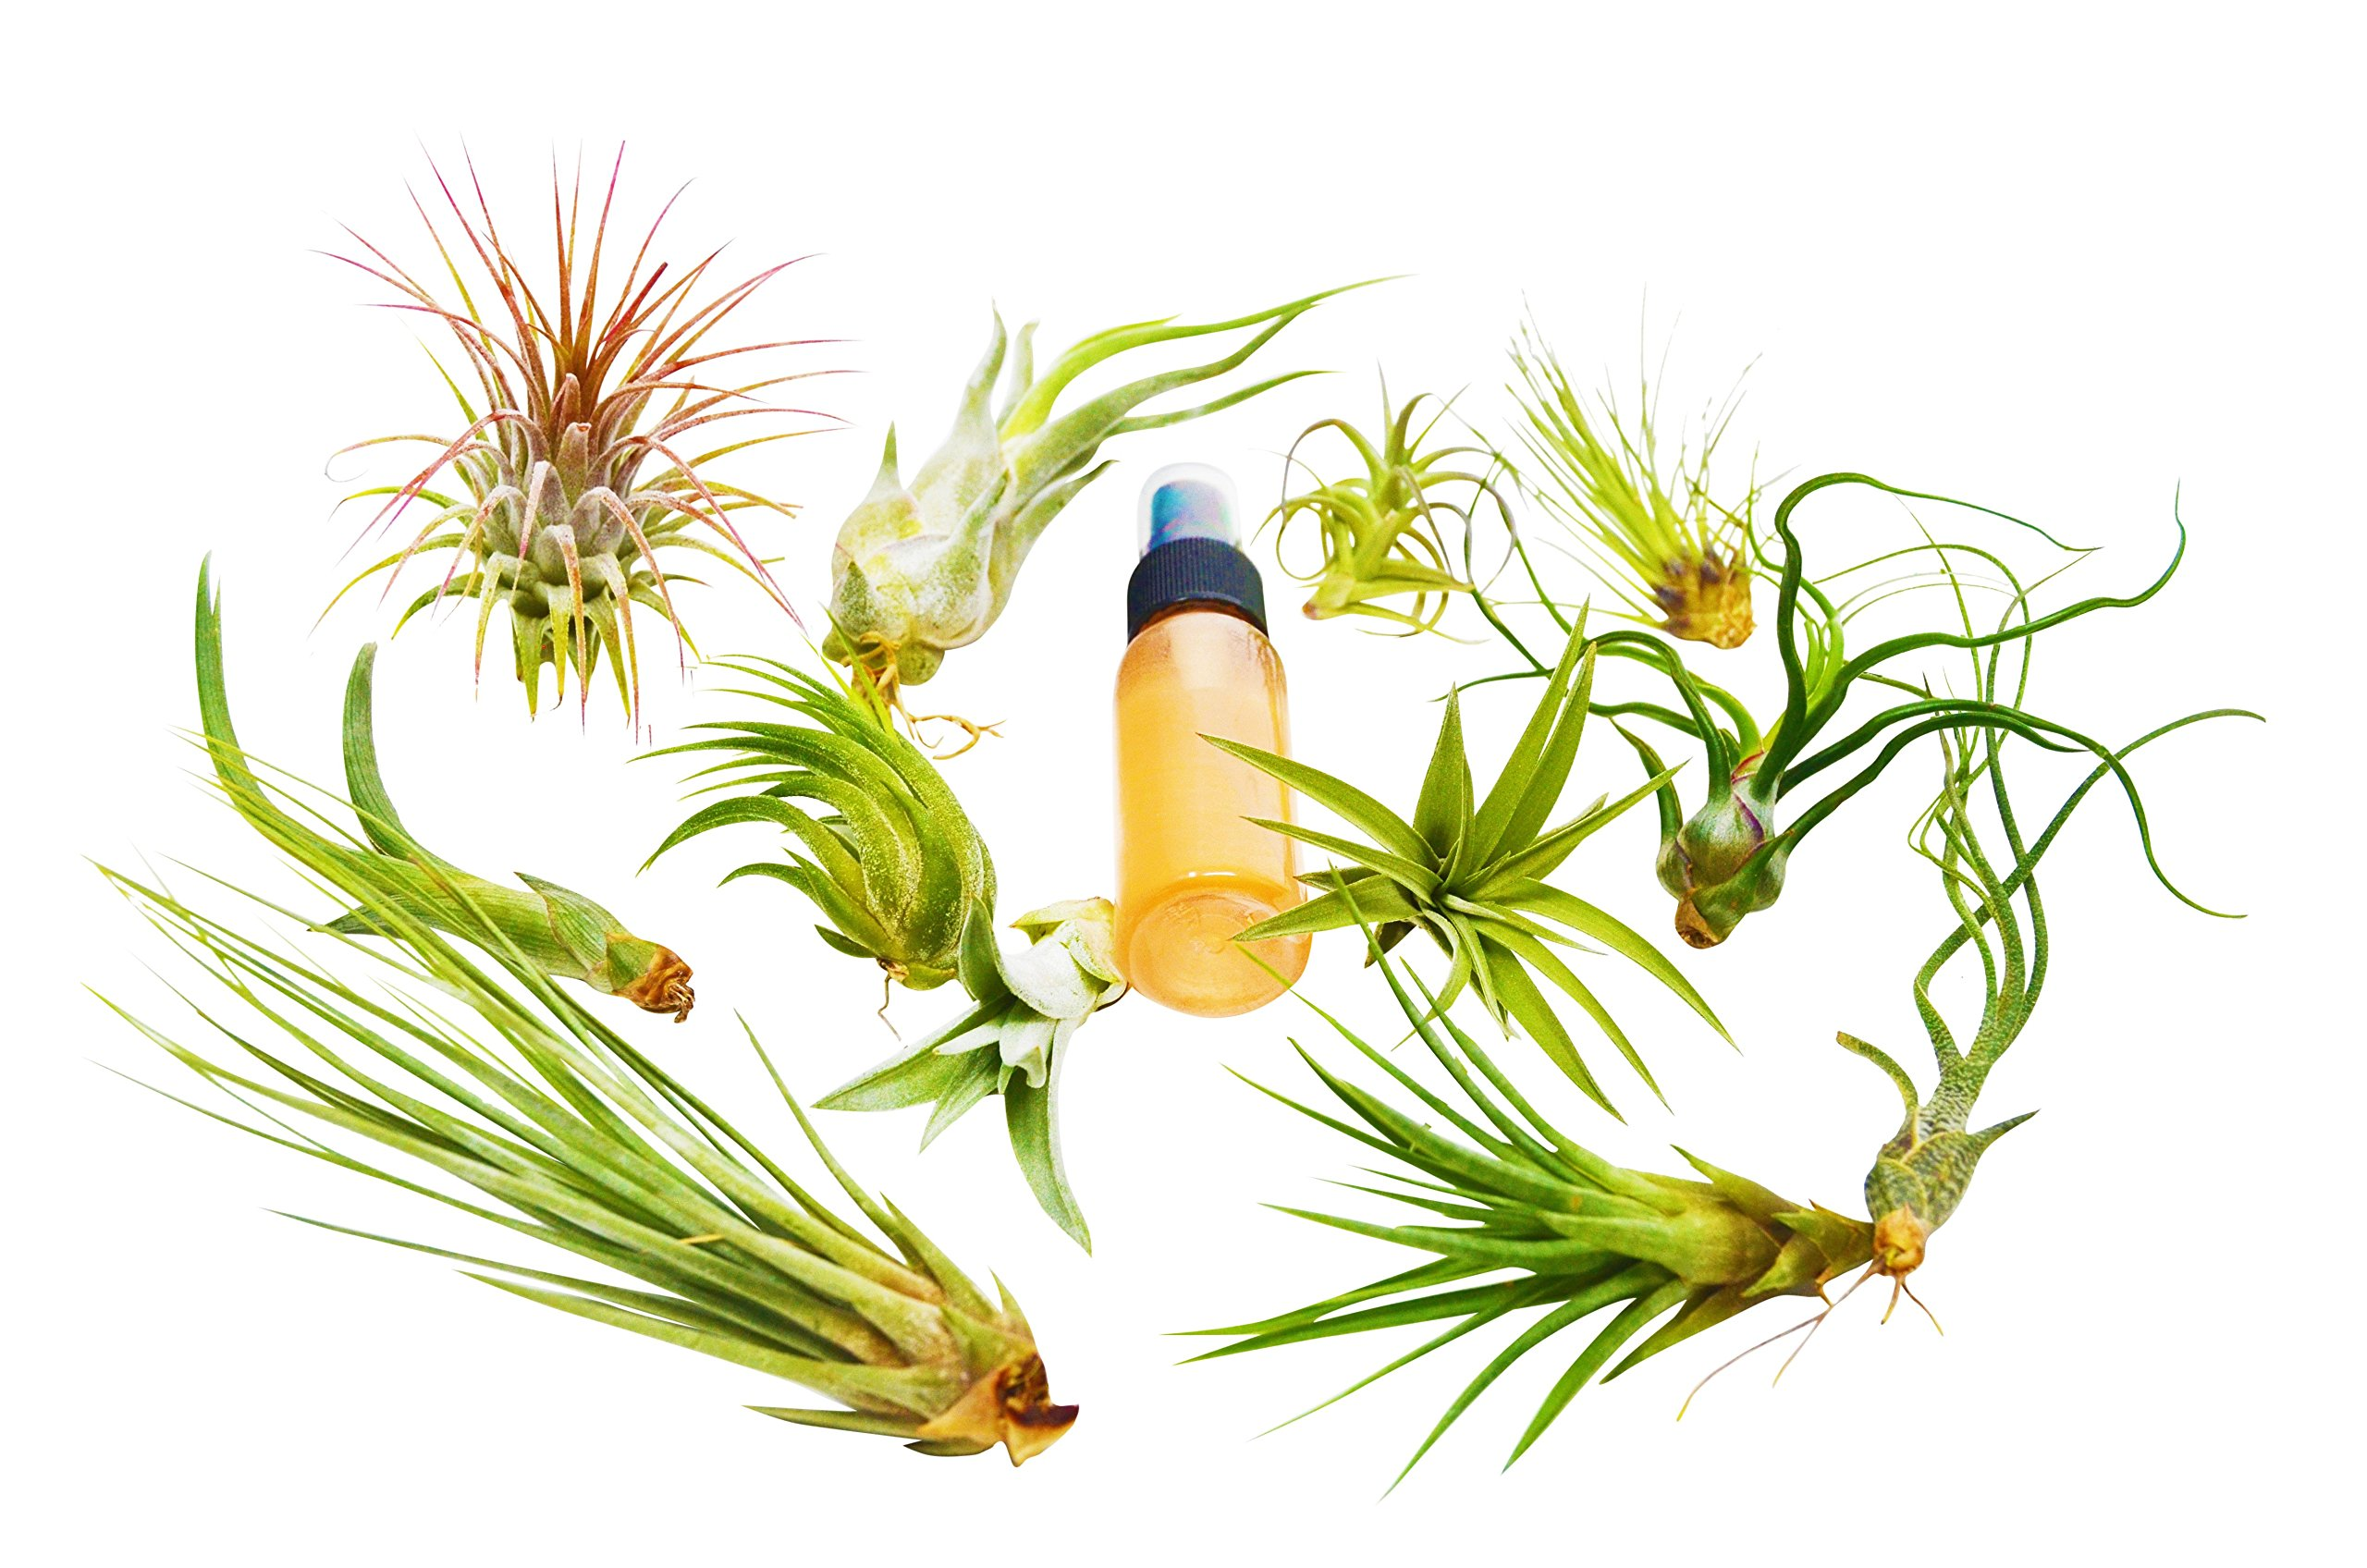 13 Pcs Tillandsia Air Plant Pack w/ Fertilizer Spray / 12 Different Species of Plants Included / Care Guide by House Plant Shop